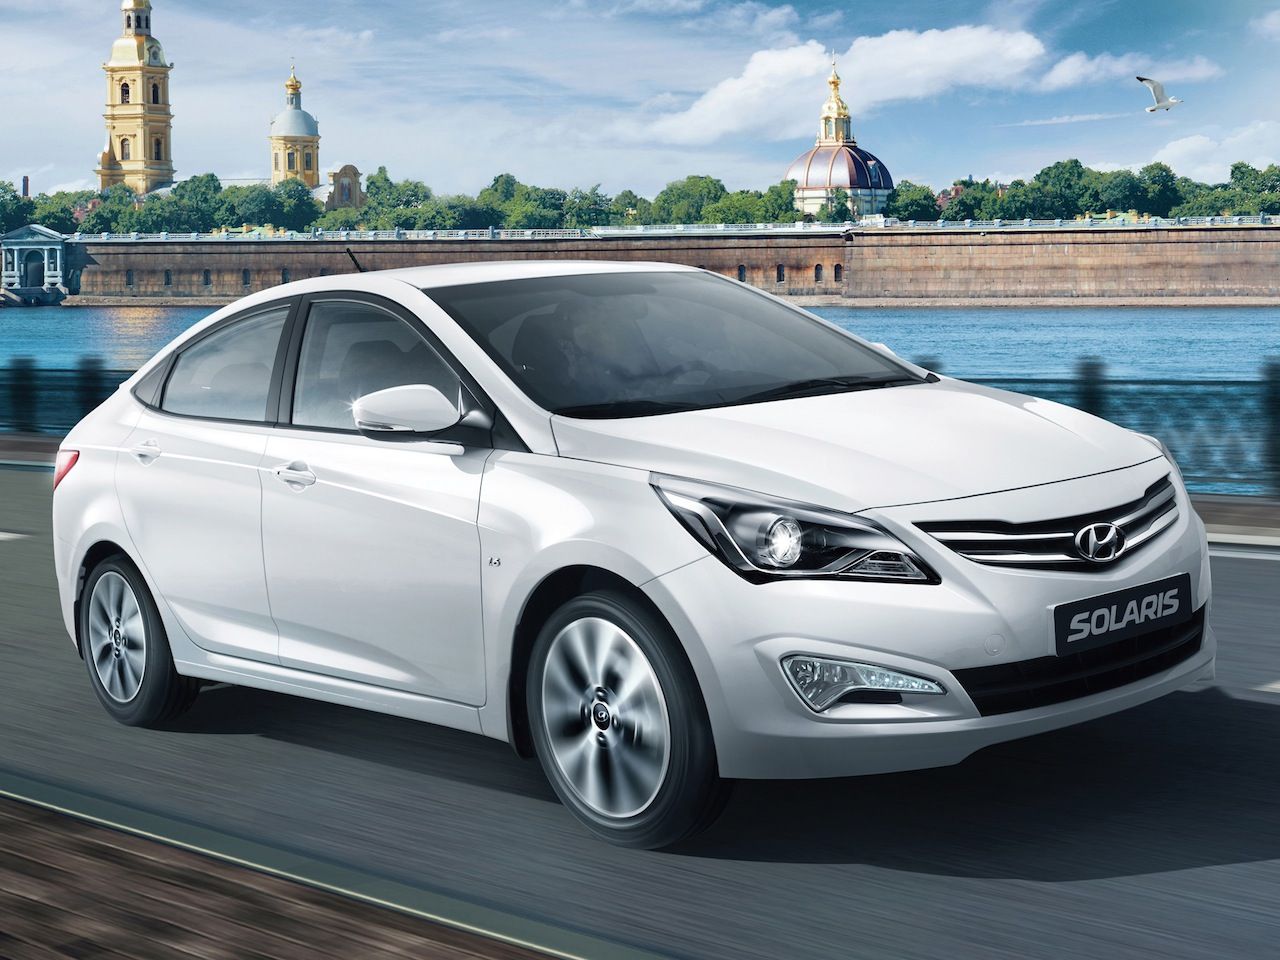 hyundai solaris sedan 2012